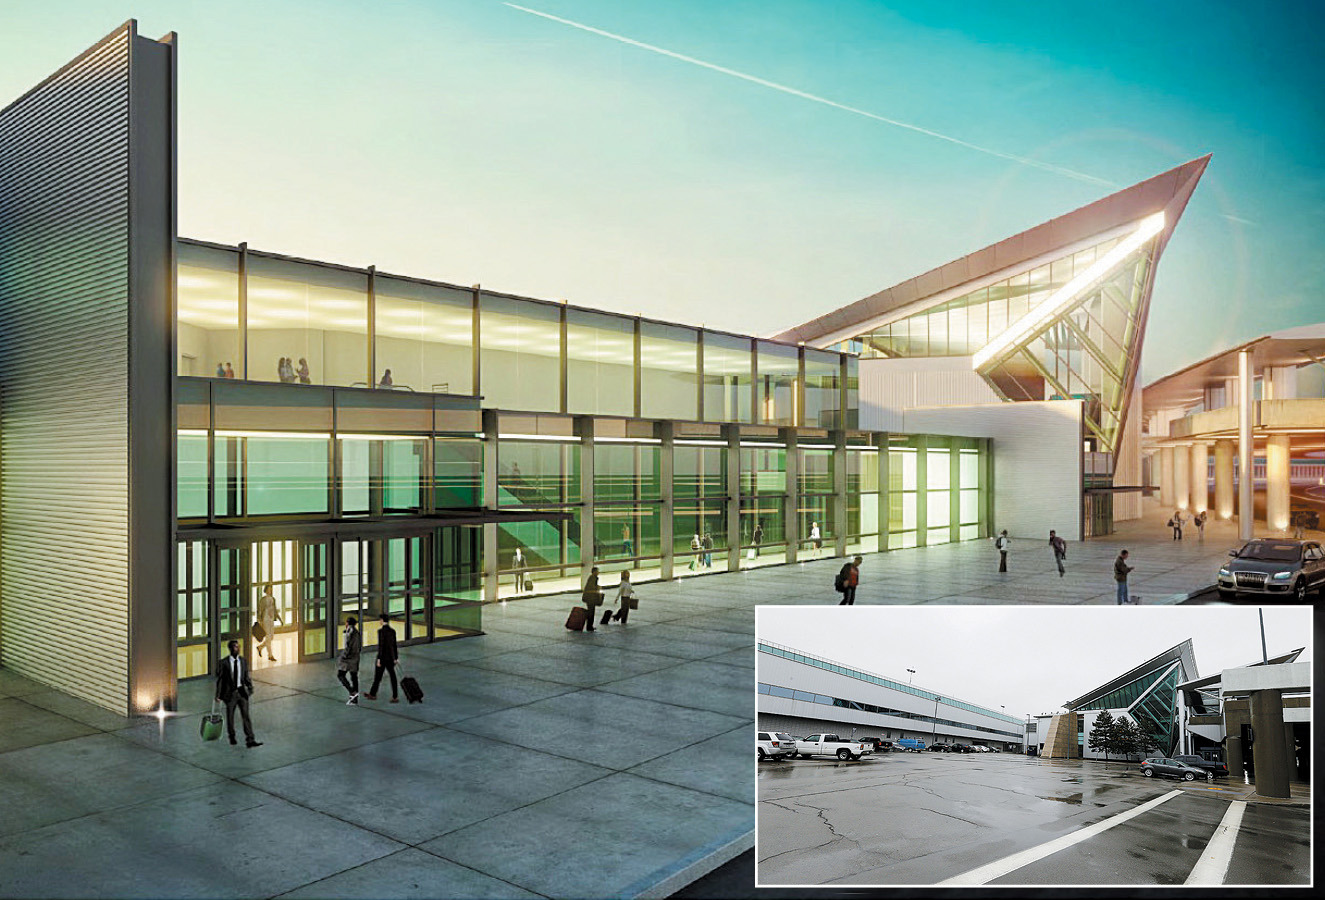 A rendering shows what the Buffalo Niagara International Airport is expected to look like when renovations are complete in 2019. In the lower right corner is an inset photo of what it looks like now.